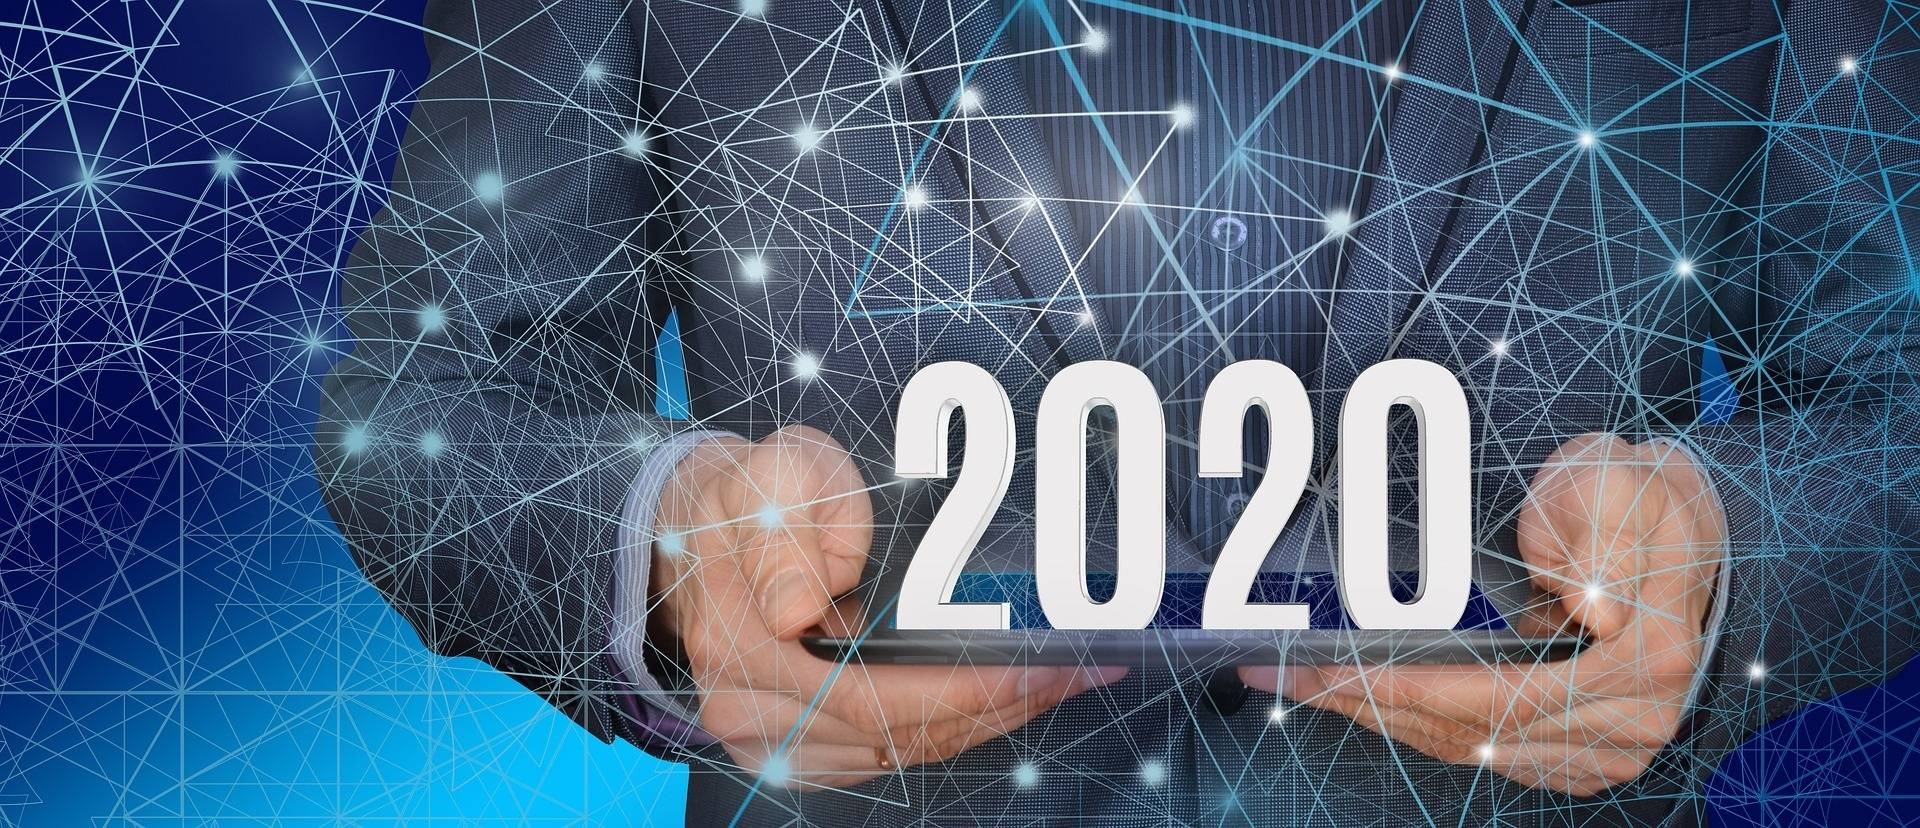 Direct Marketing Trends for 2020